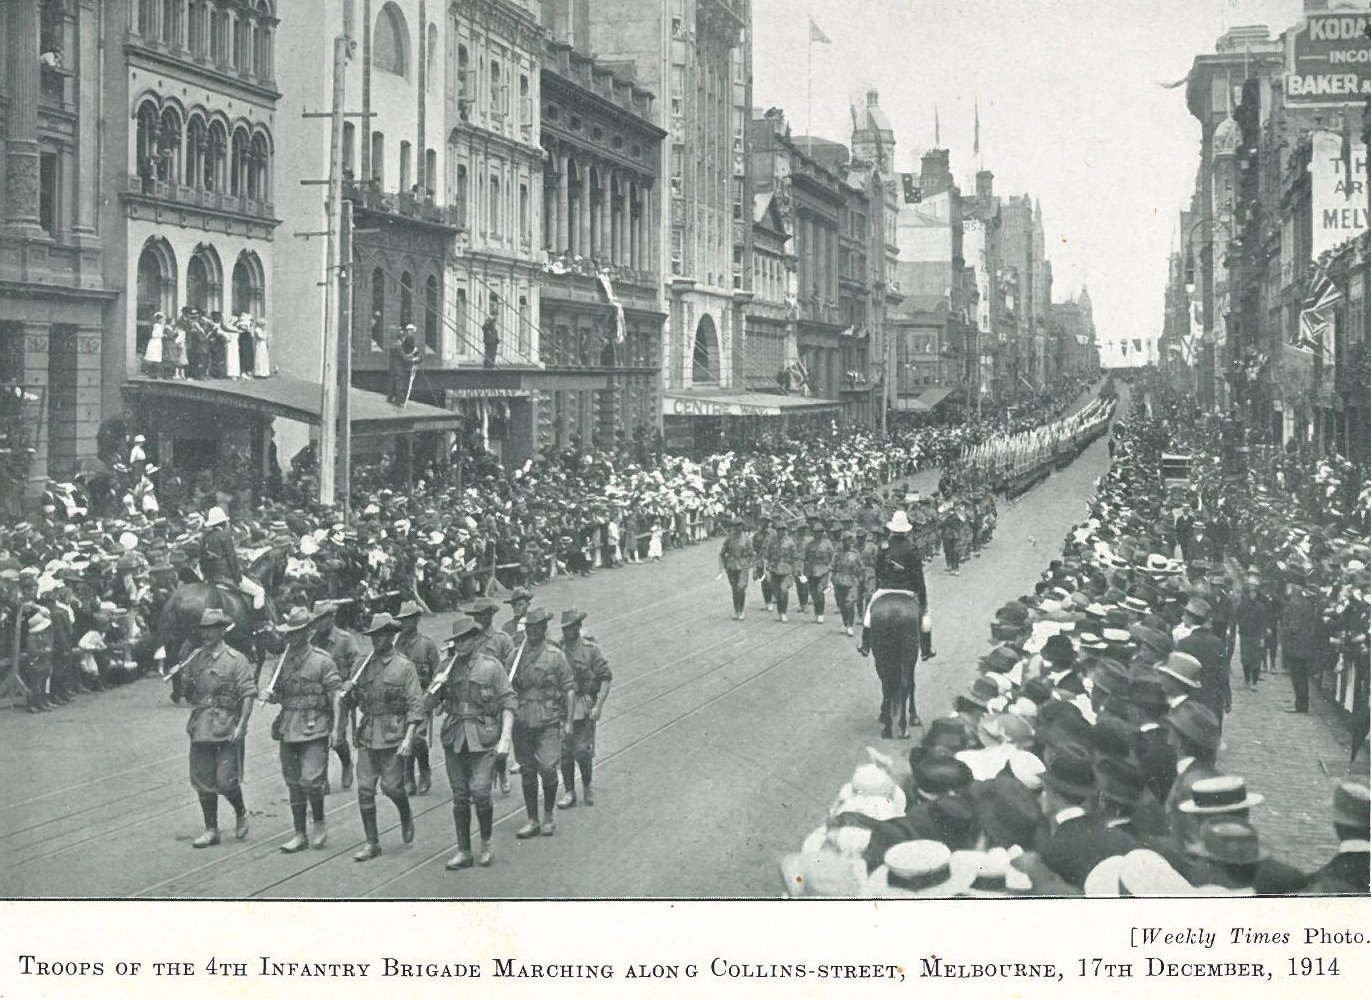 Trooops of the 4th Infantry Brigade march in Collins Street, Melbourne, 17 December 1914. Weekly times photo.